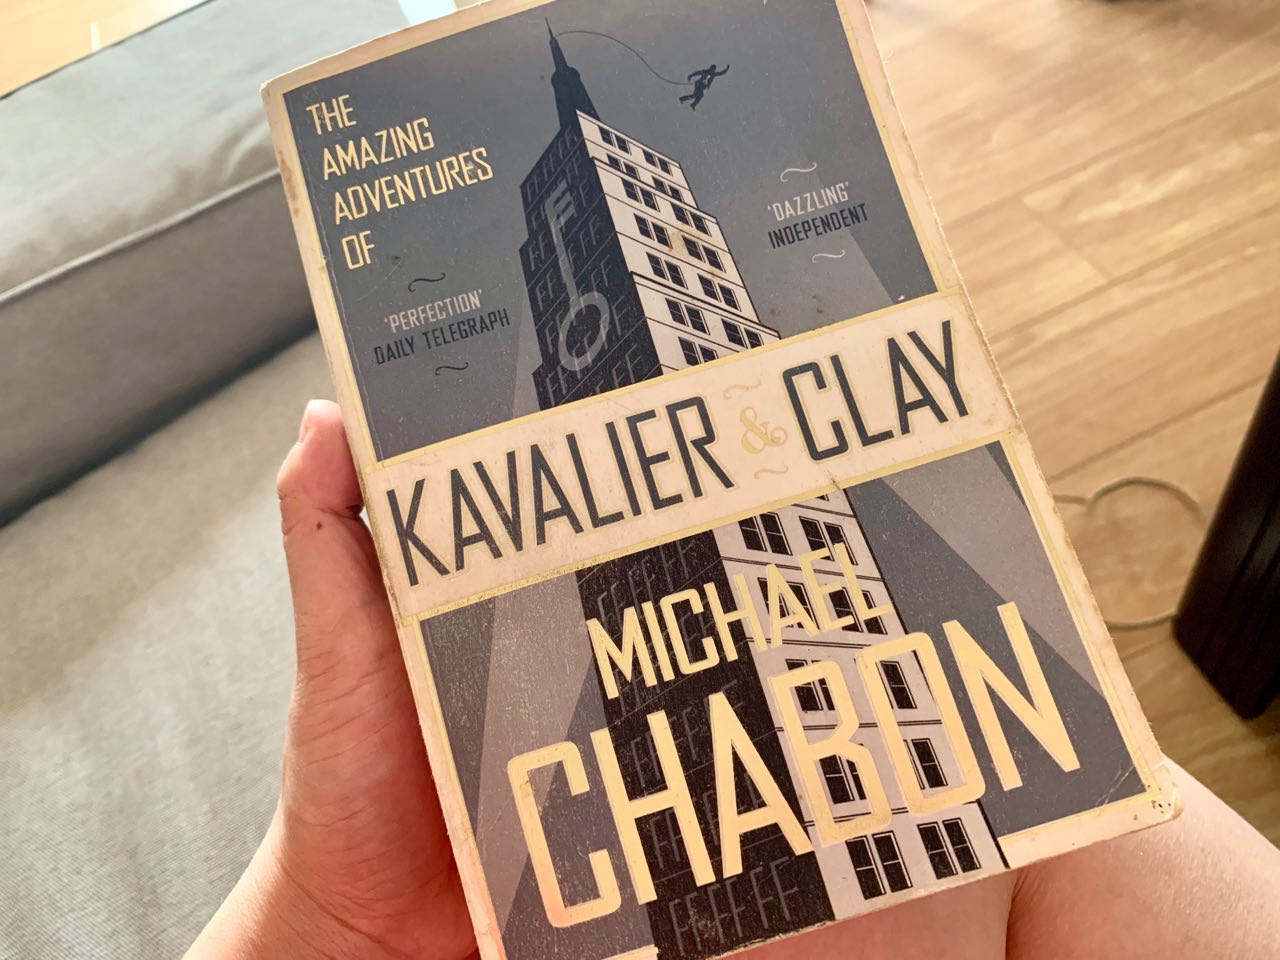 december 2018 monthly review - adventures of kavalier & clay